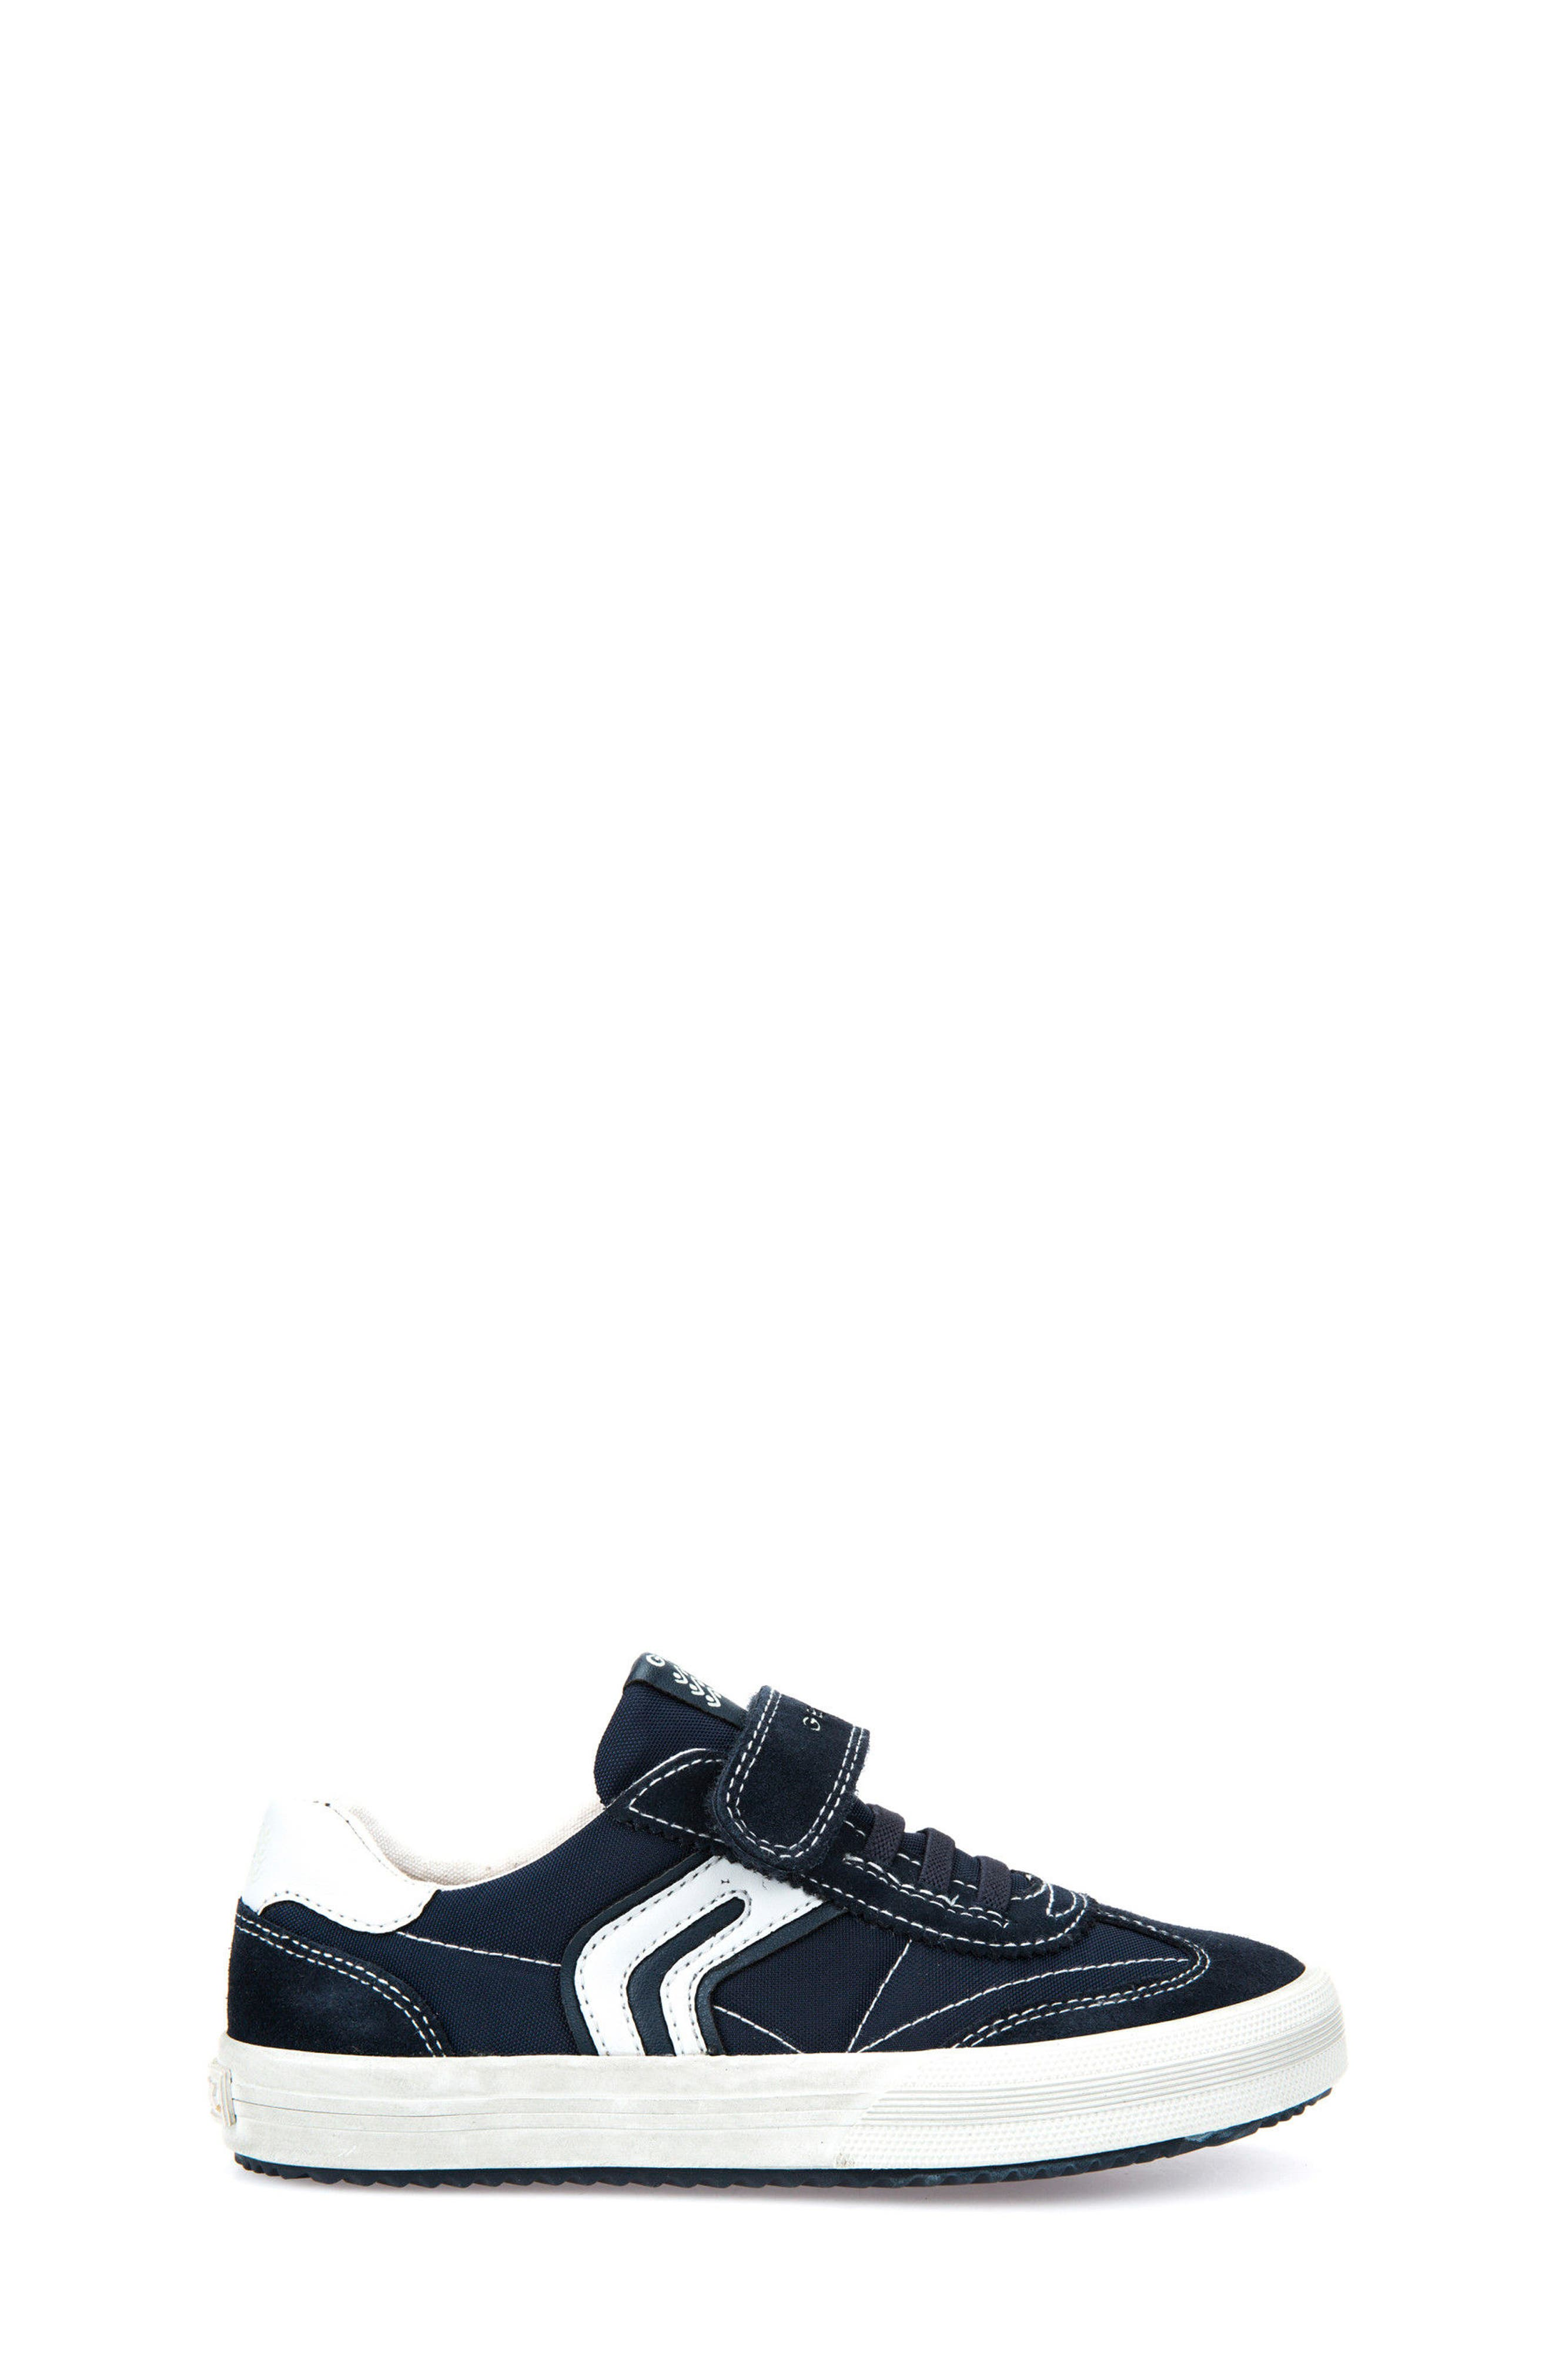 Alonisso Low Top Sneaker,                             Alternate thumbnail 3, color,                             NAVY/ GREY